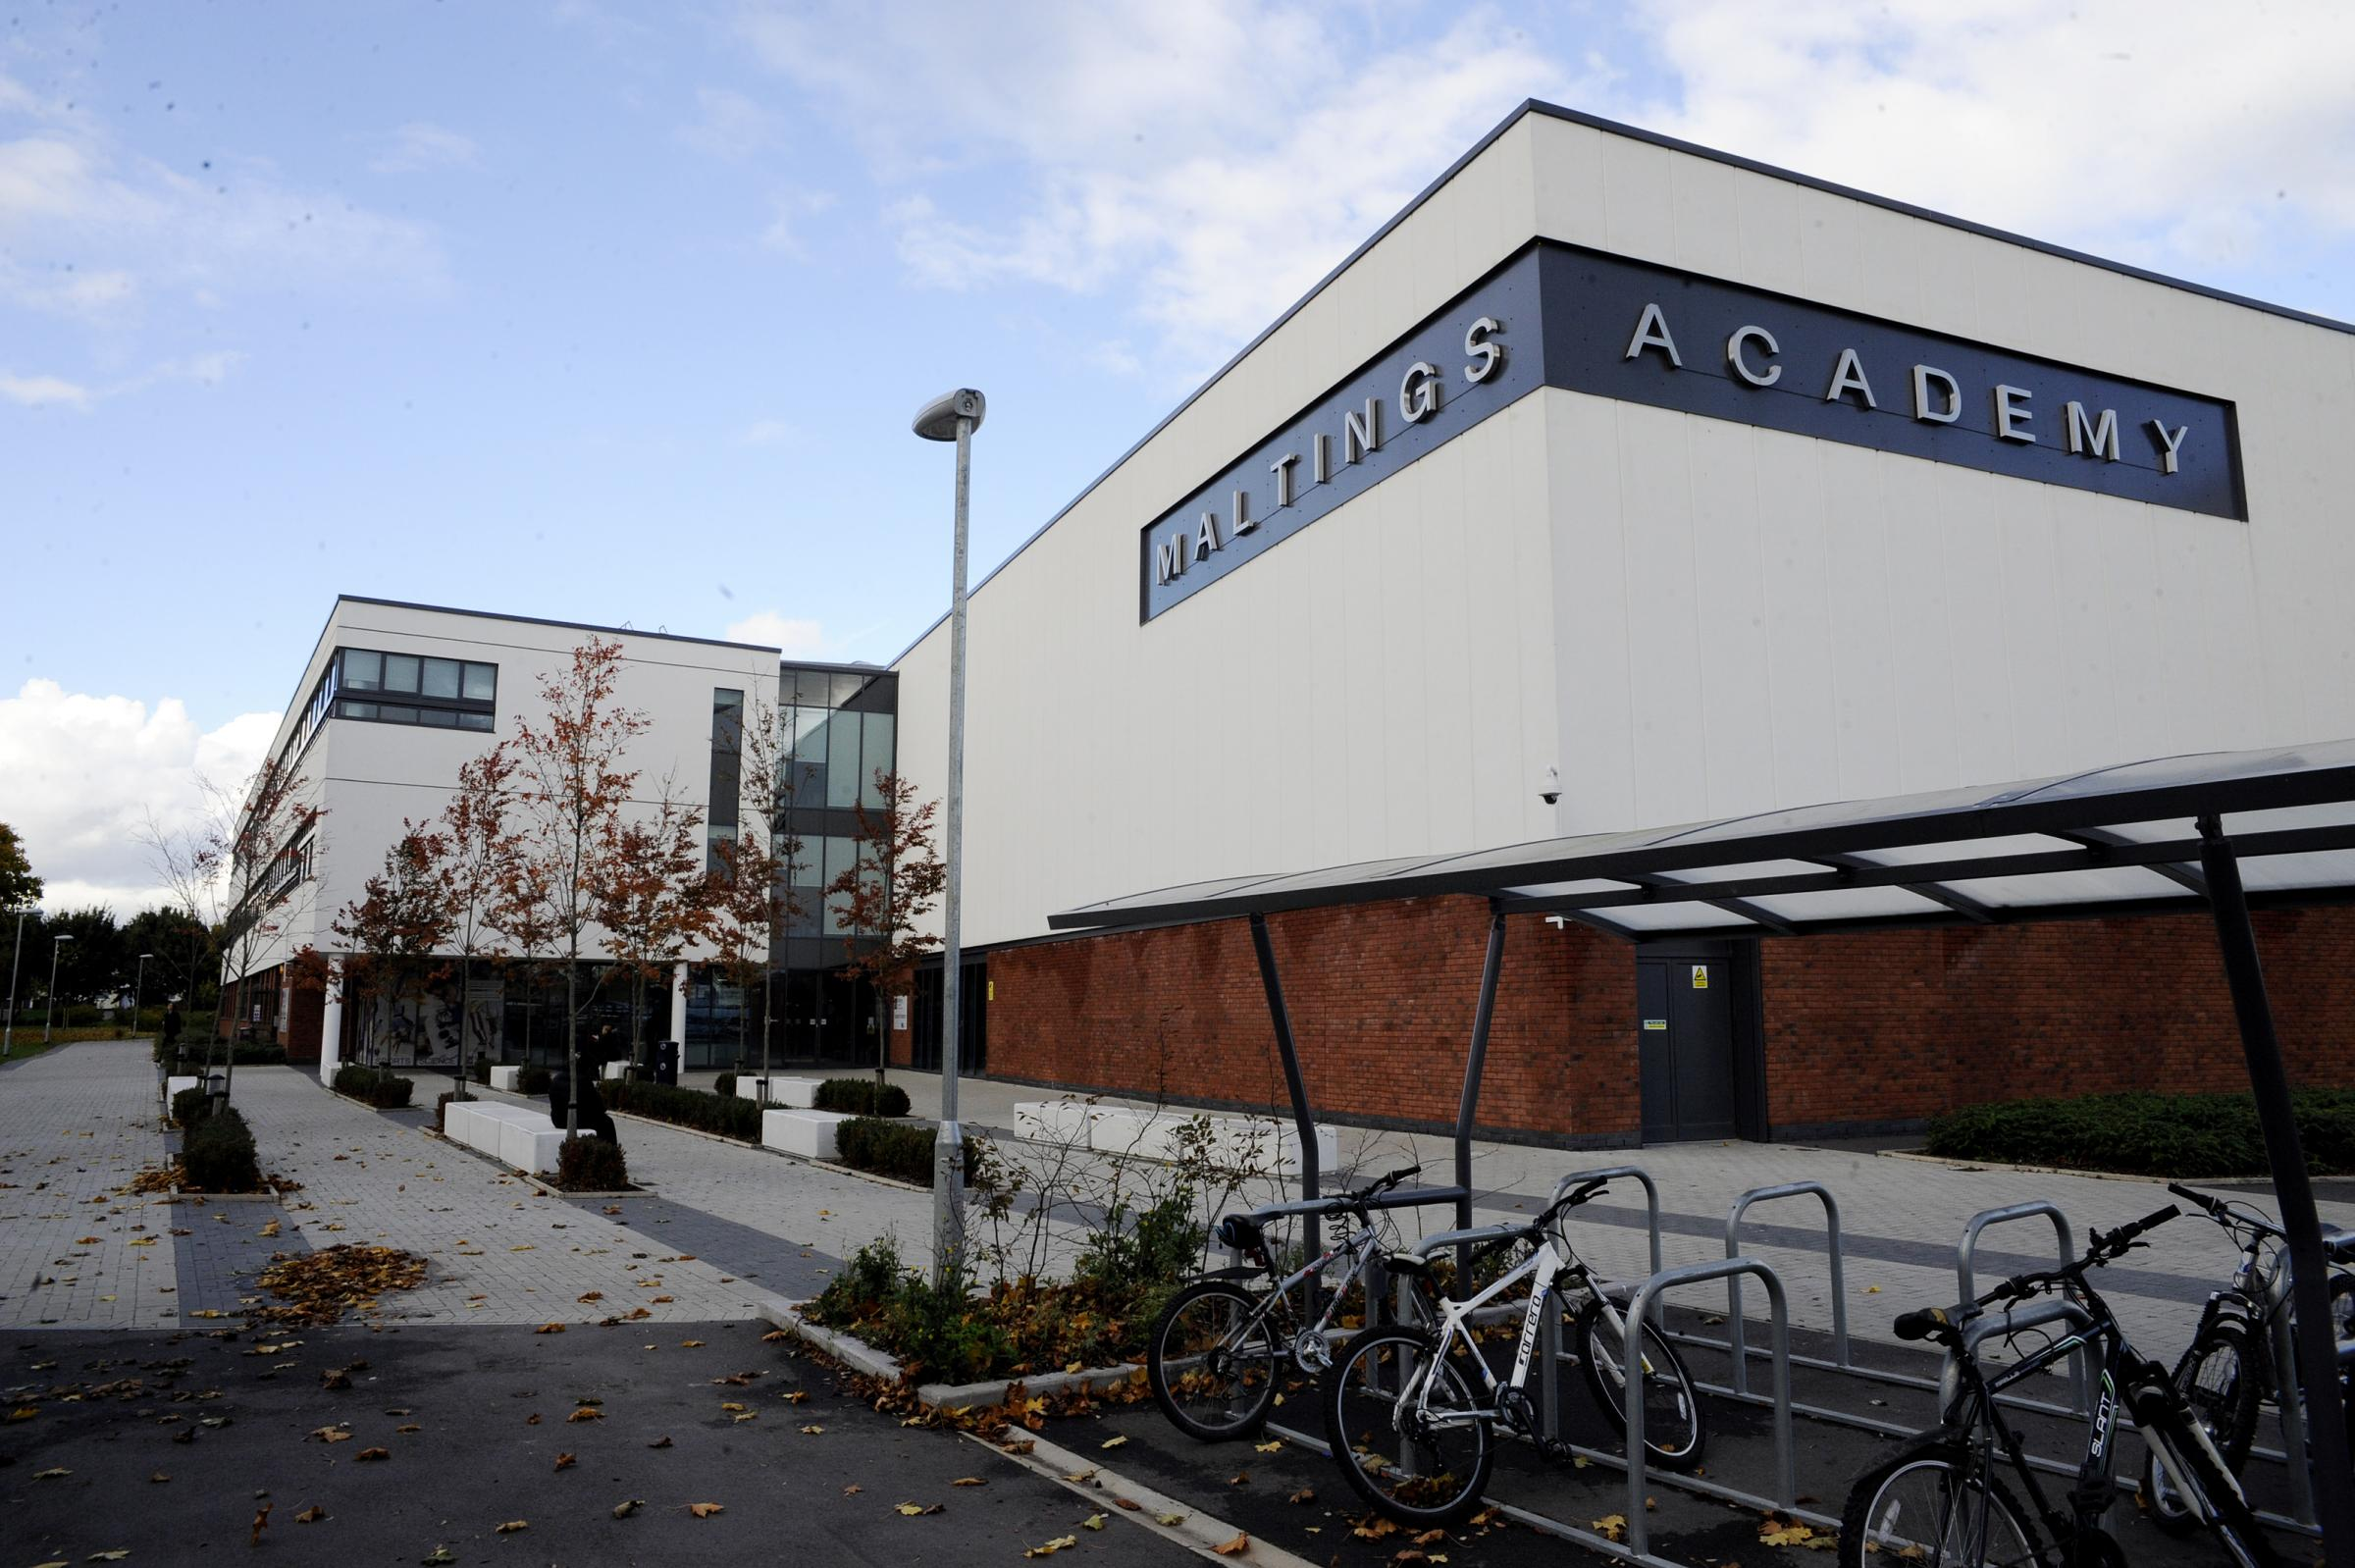 AET: Preferred option to keep Witham academies as separate schools